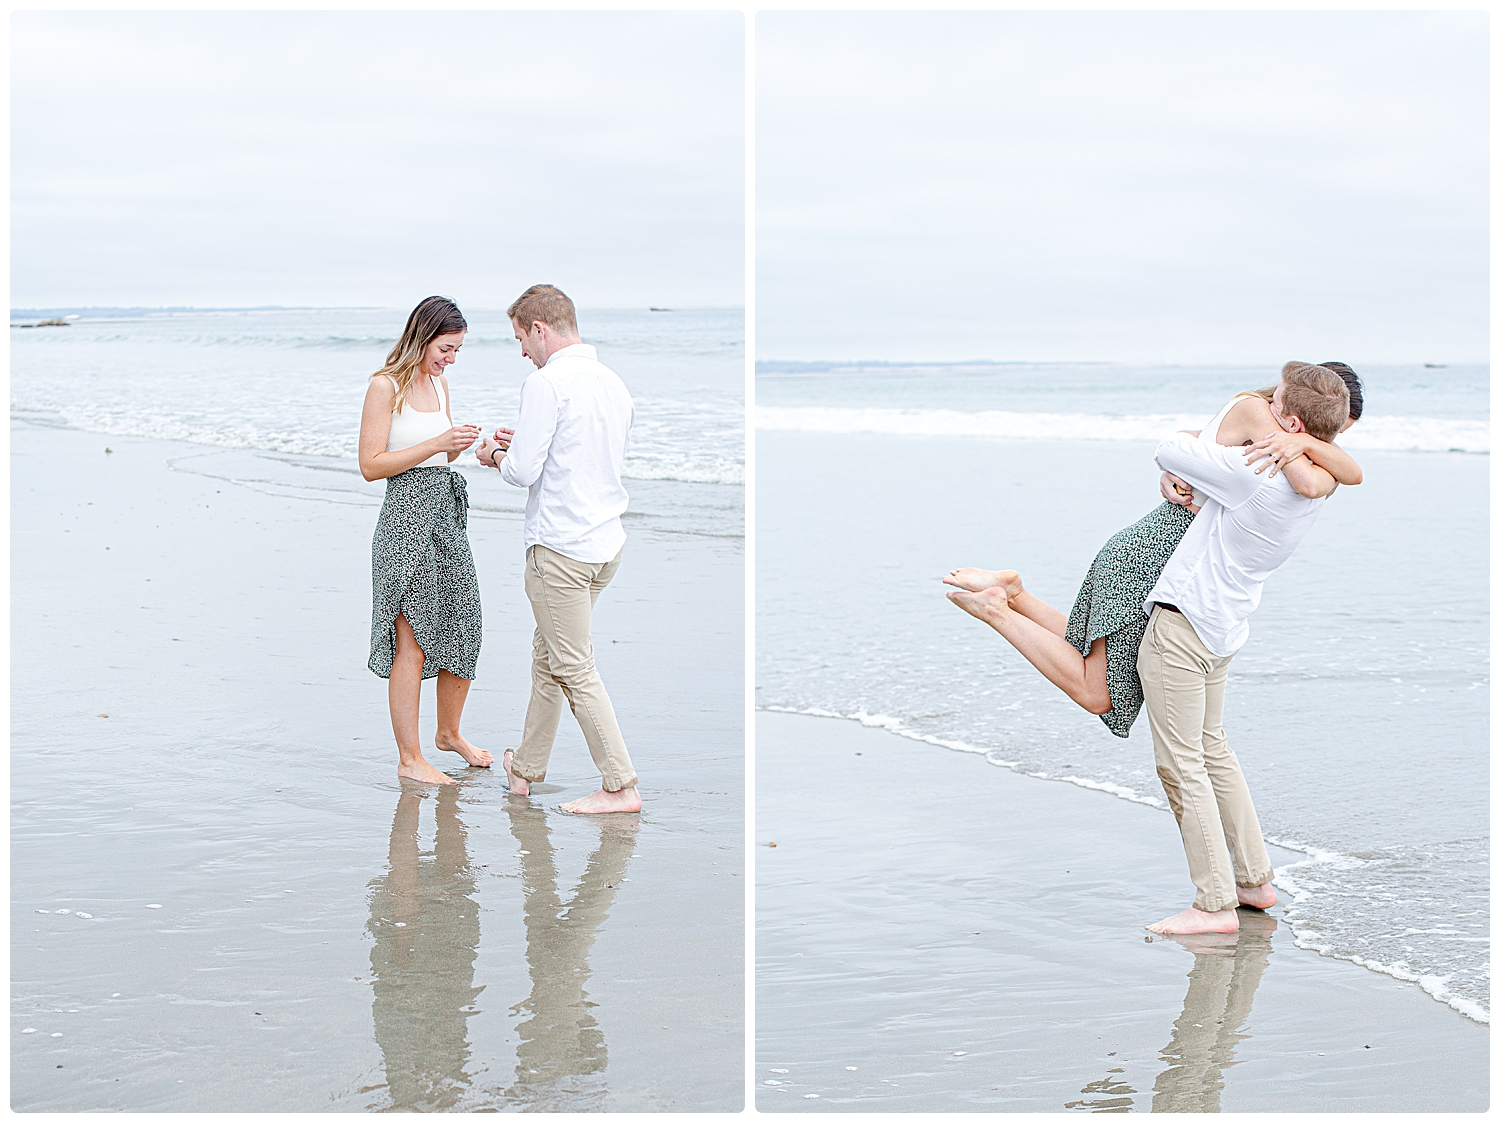 061919_EthanEmma_proposal_Renoda Campbell Photography-7112.jpg